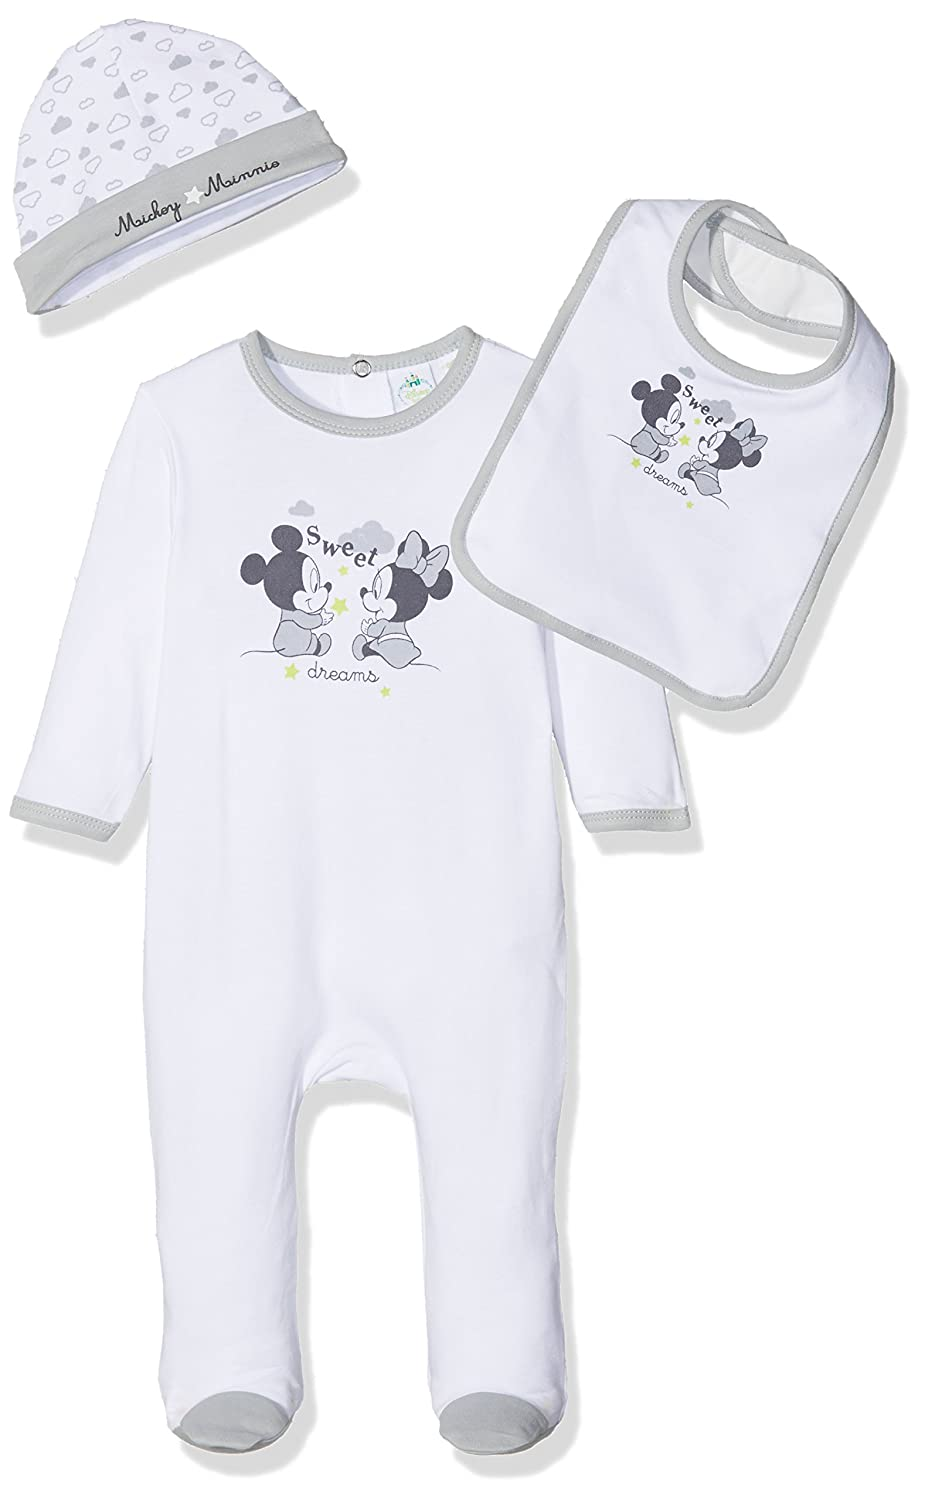 Mickey Mouse Baby Boys' Mickey & Minnie Box Lingerie Set (White 15-4101TC) 3-6 Months AQE0338